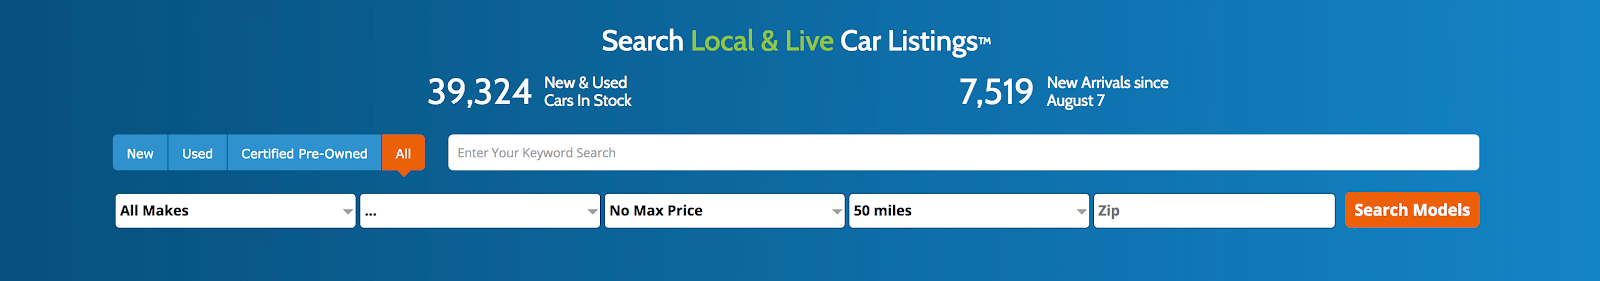 Search Local & Live Car Listings